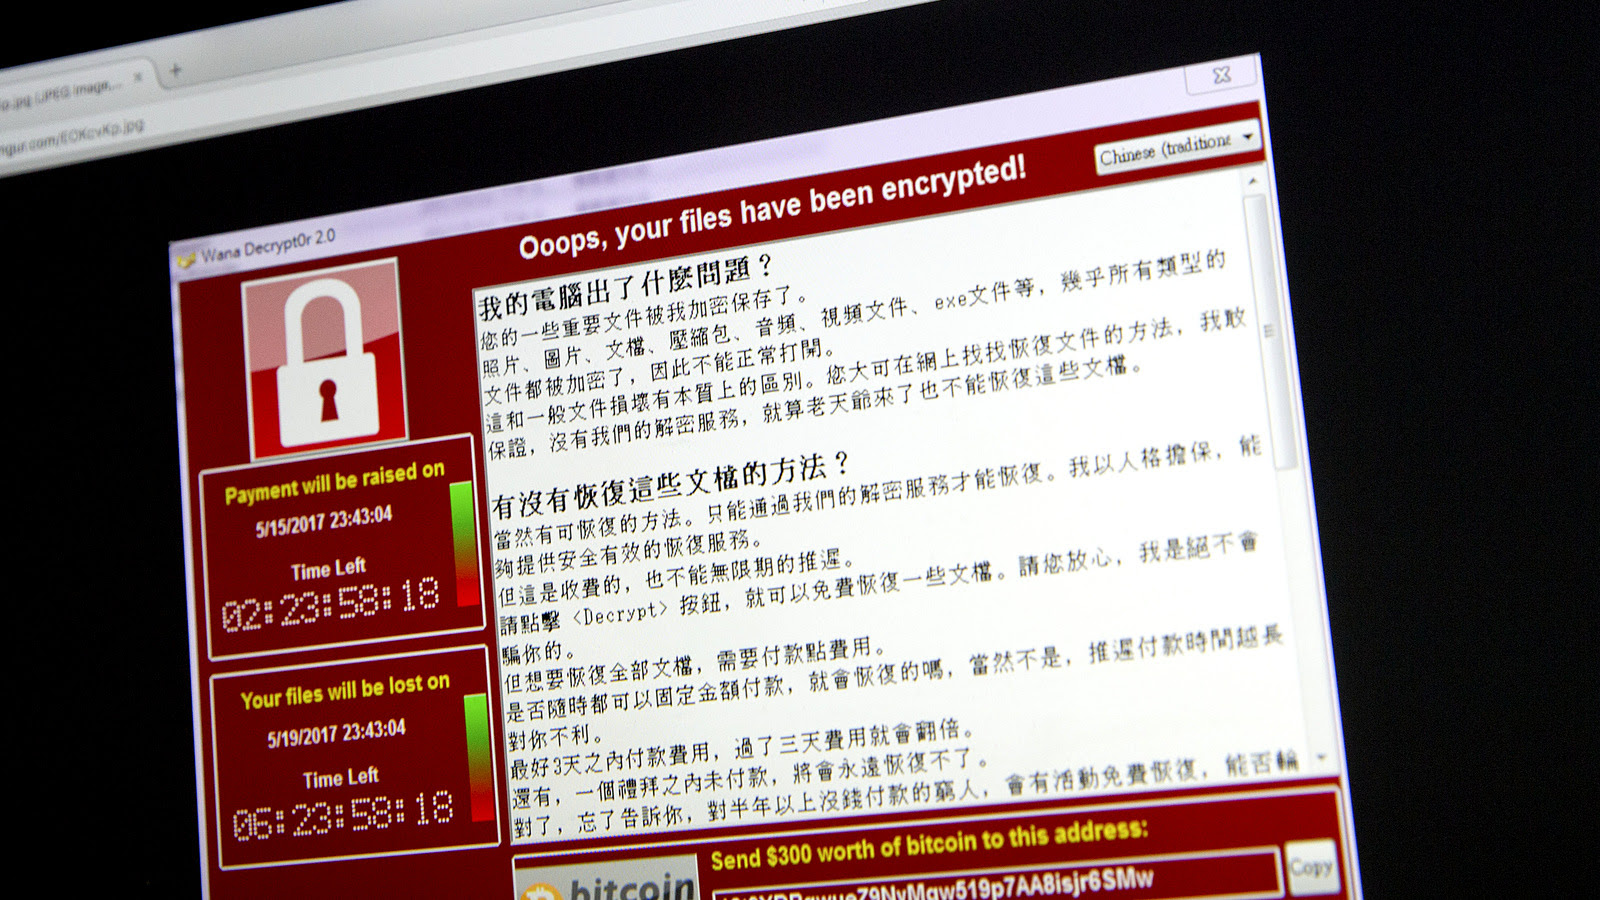 A screenshot of the warning screen from a purported ransomware attack, as captured by a computer user in Taiwan, is seen on laptop in Beijing, Saturday, May 13, 201. (AP/Mark Schiefelbein)